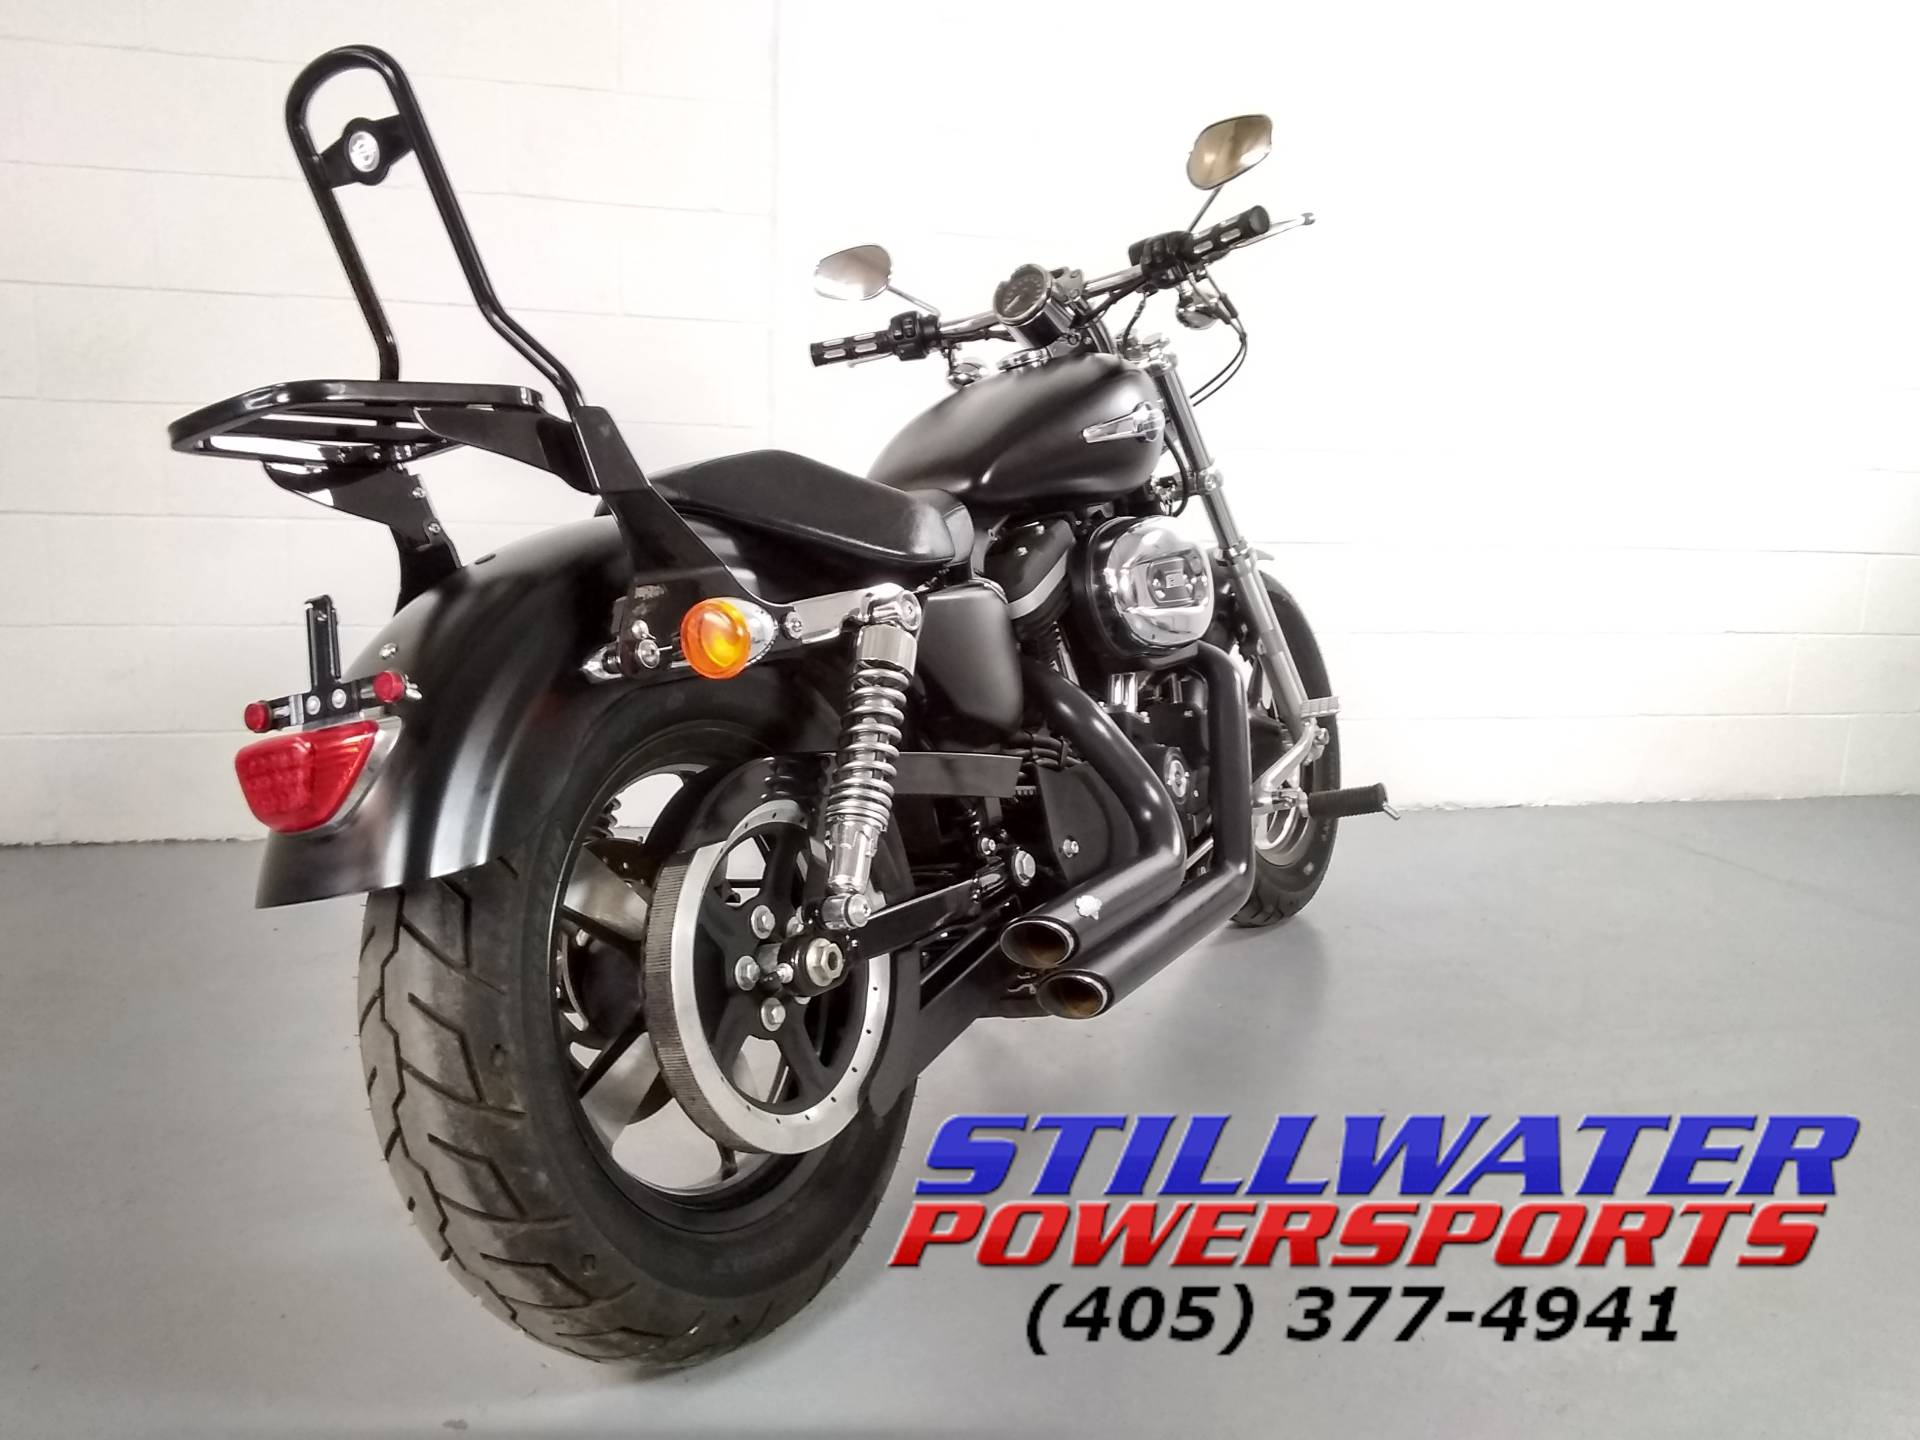 2013 Harley-Davidson Sportster® 1200 Custom in Stillwater, Oklahoma - Photo 6